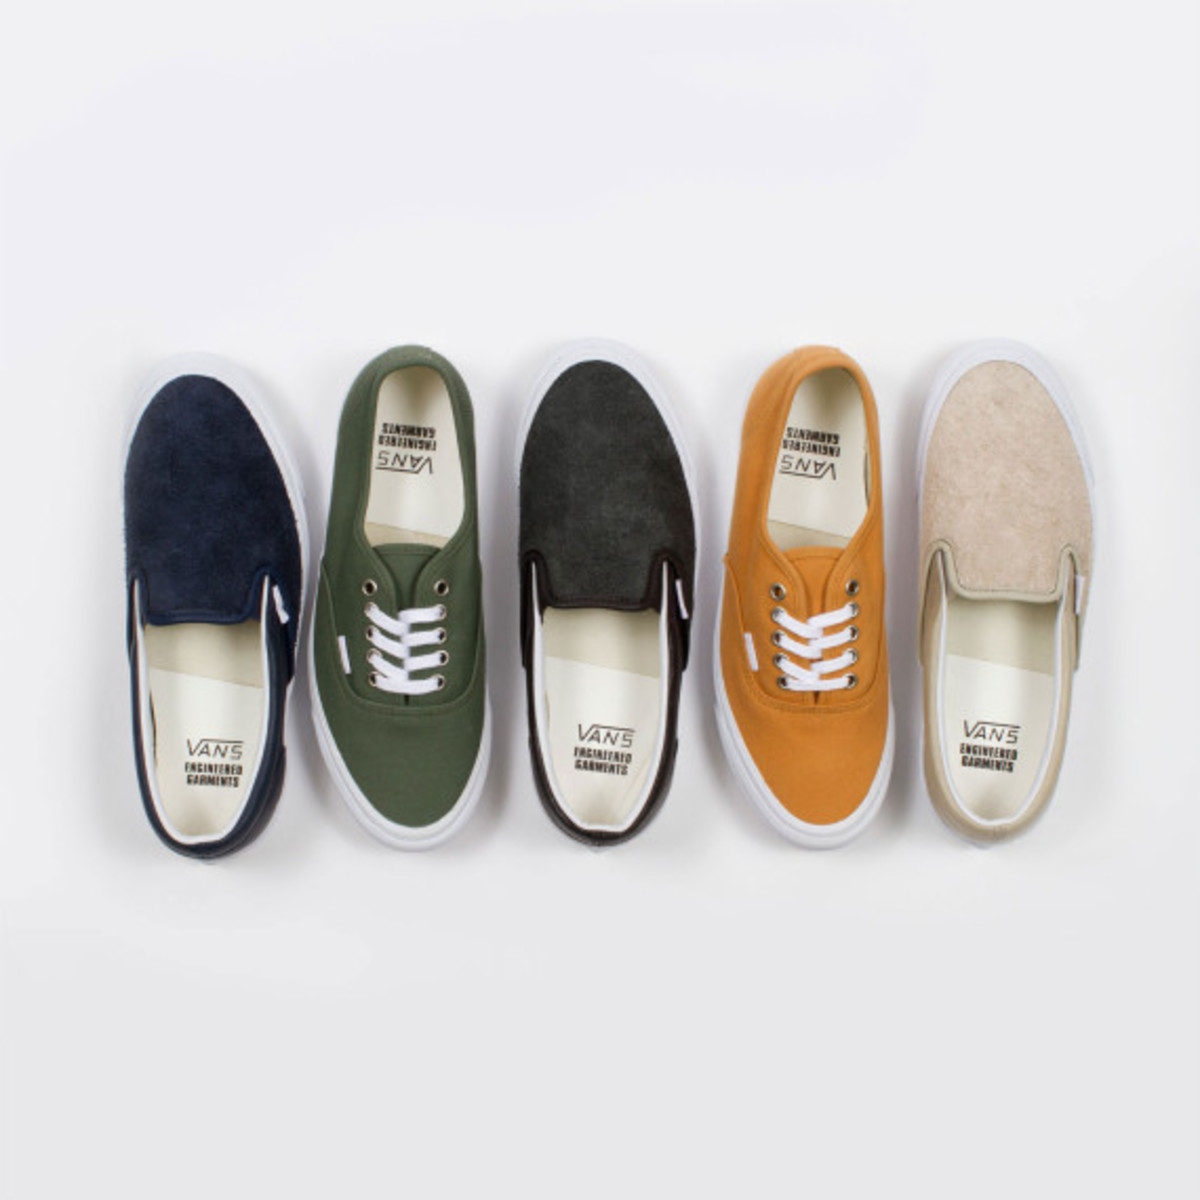 engineered-garments-vault-by-vans-collection-launch-at-nepenthes-07